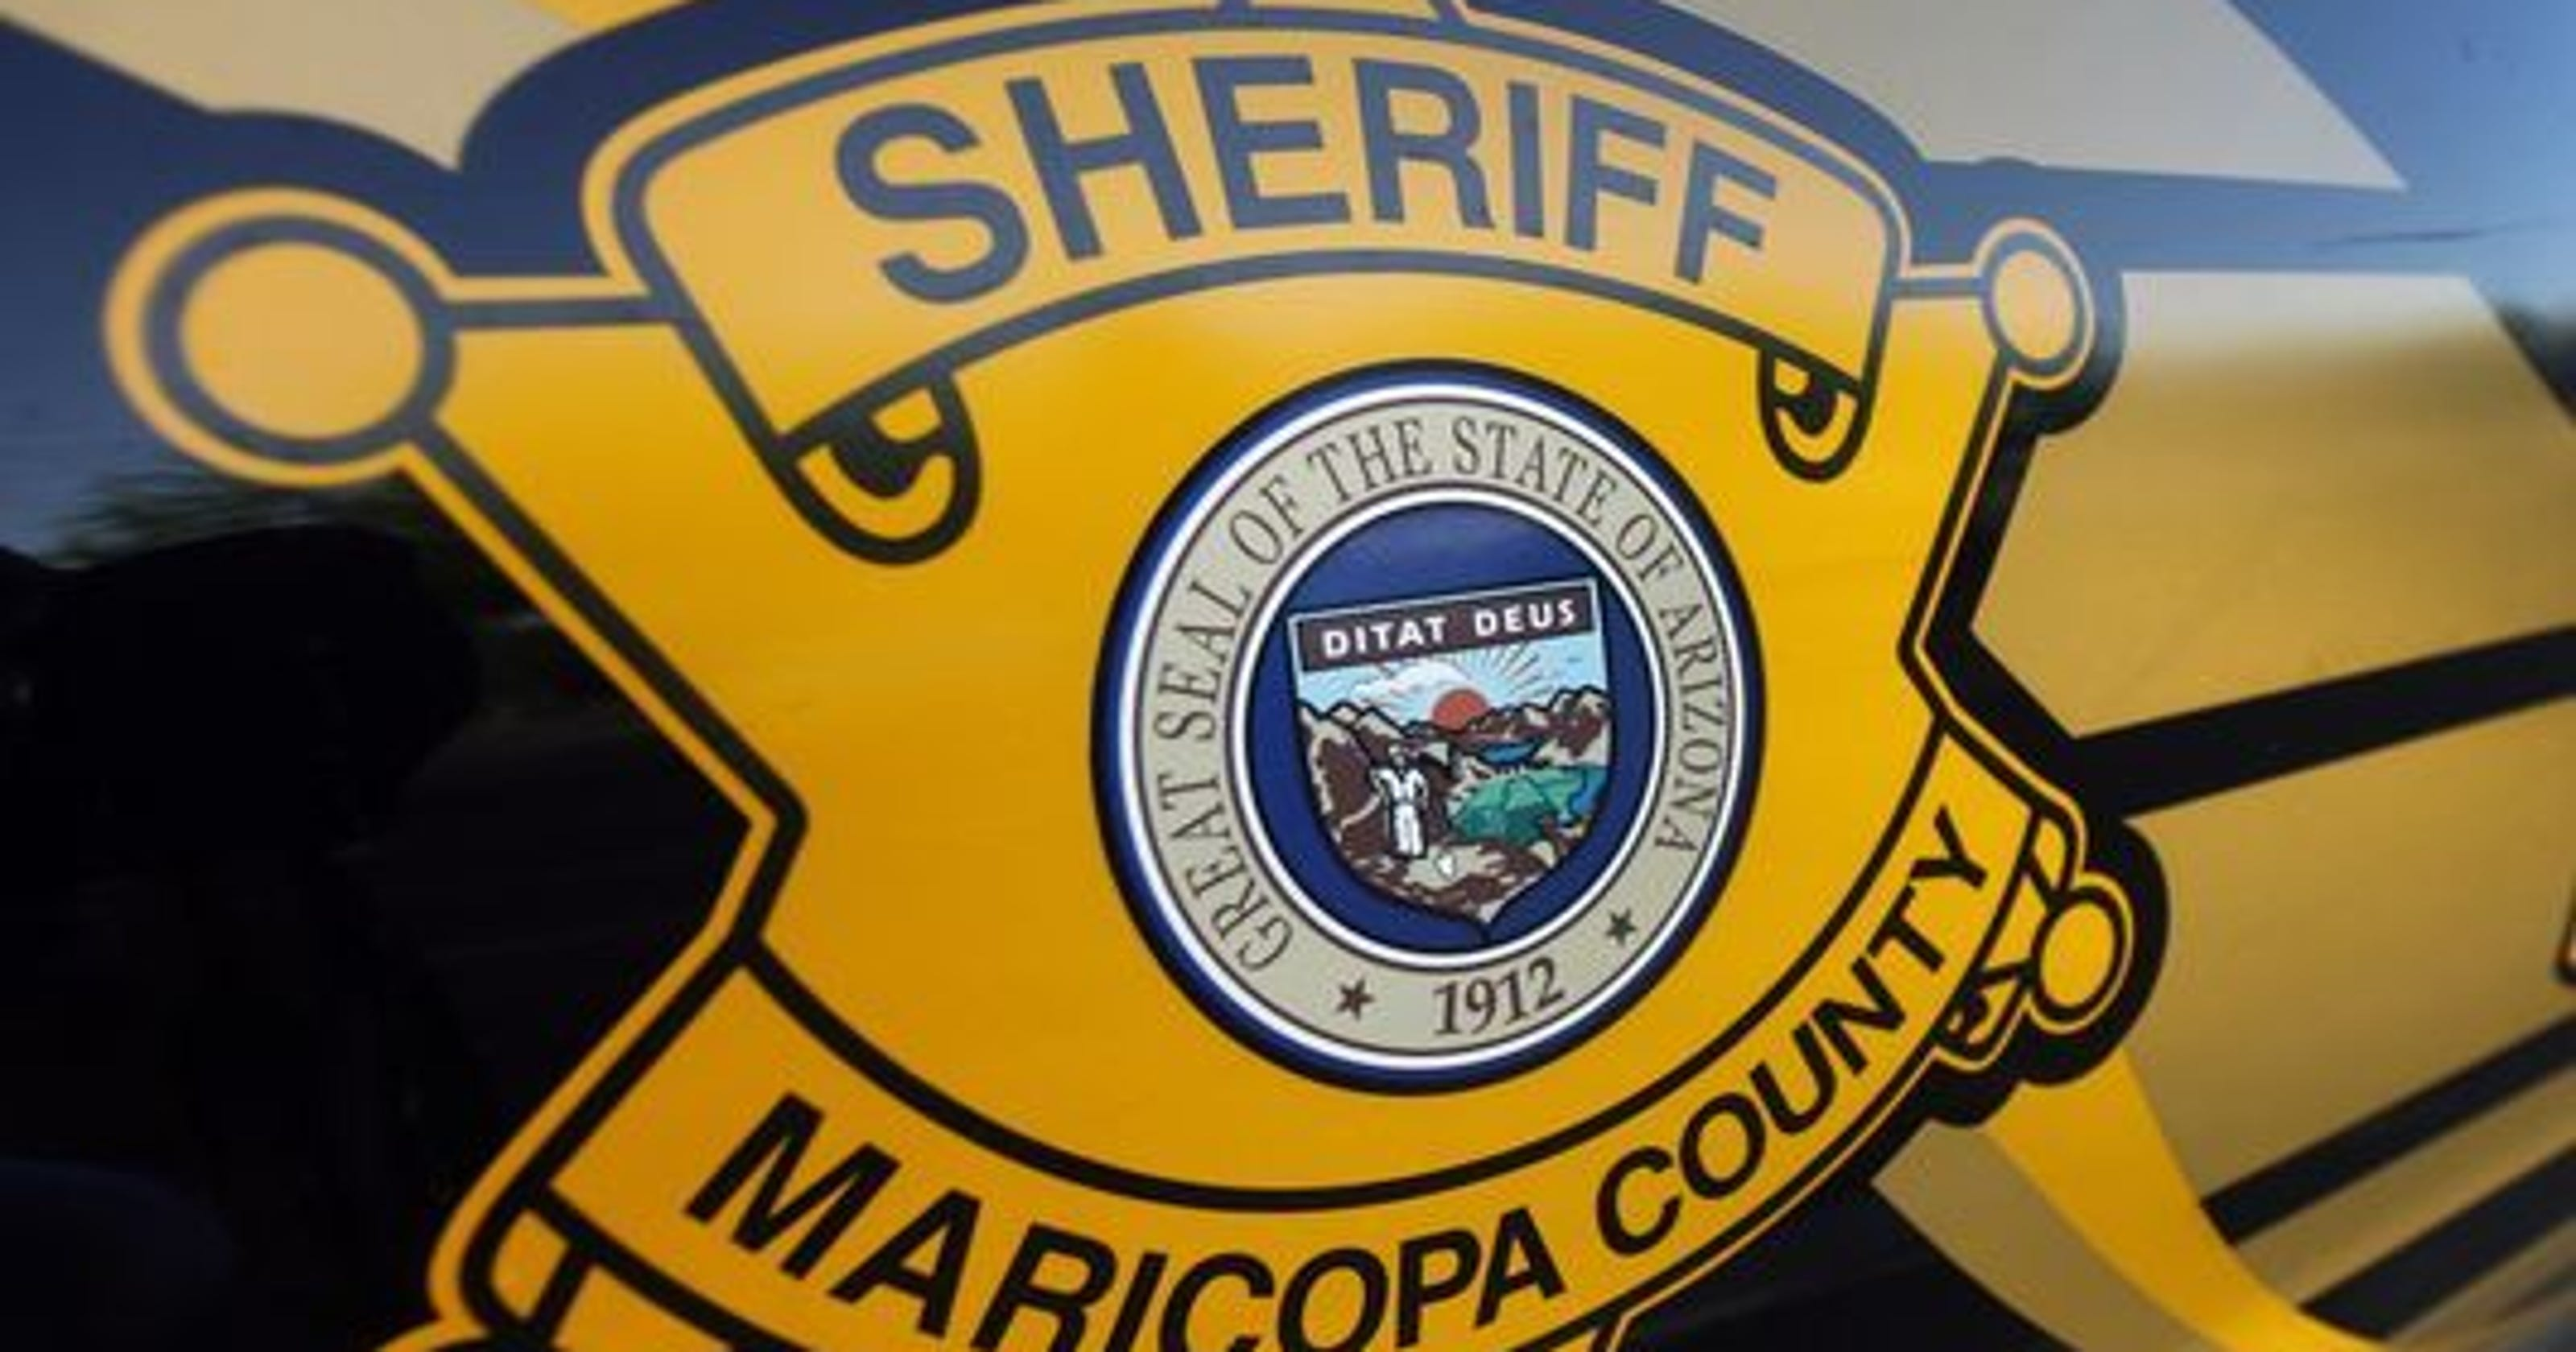 Middle name mix-up: Wrong man arrested by MCSO's deputies